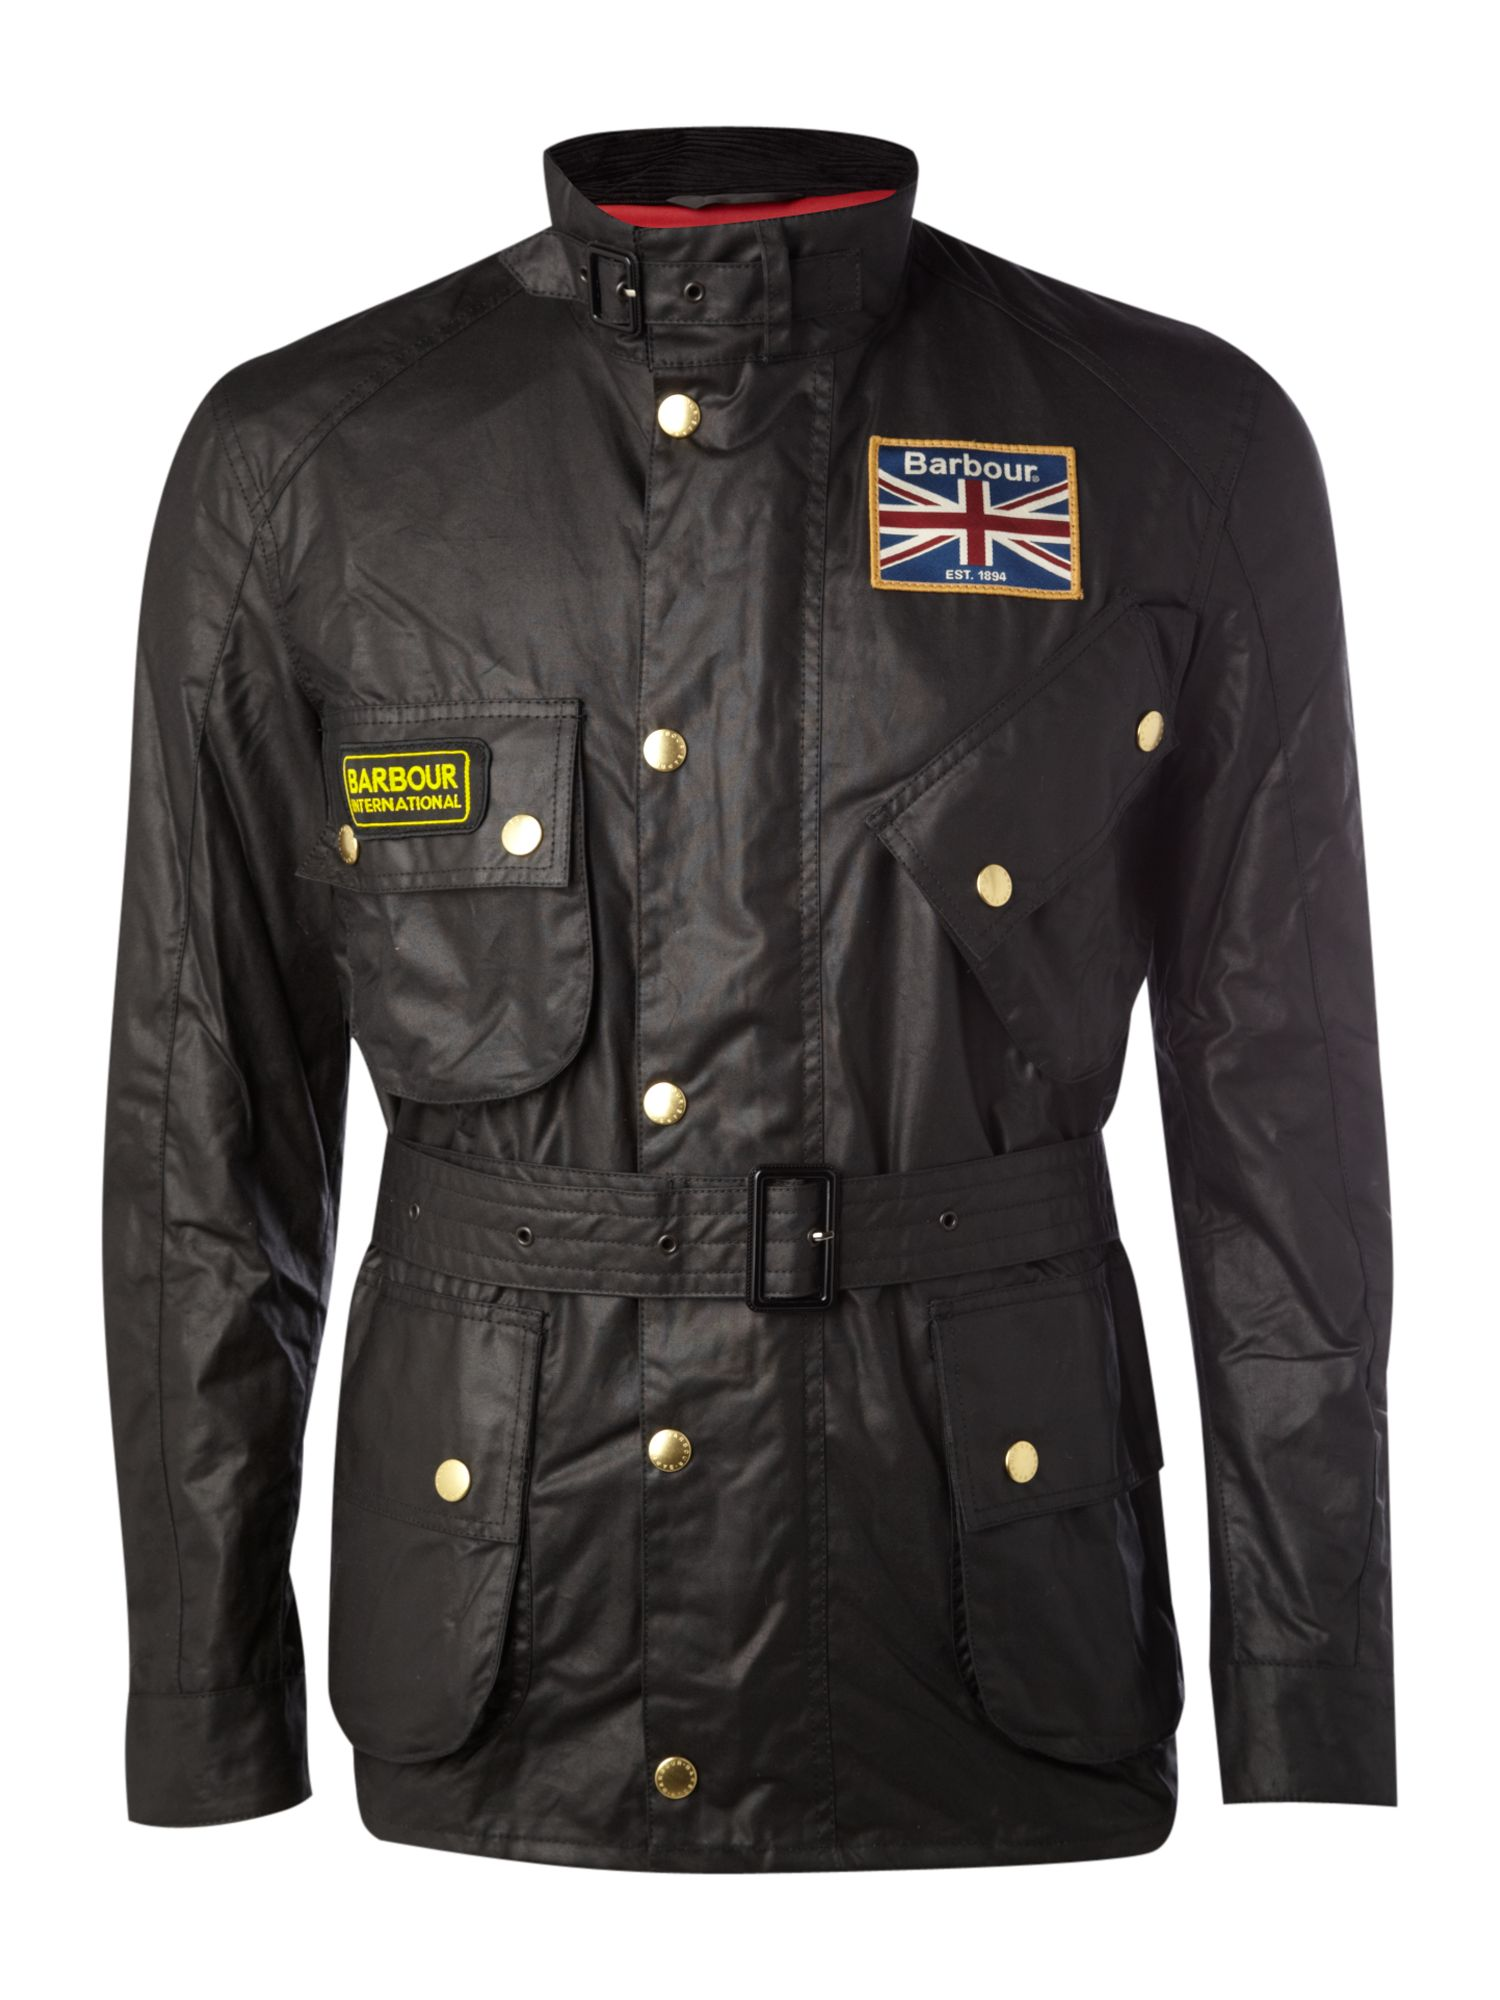 Barbour Sapper Jacket >> Lyst - Barbour Union Jack Lined Motorcycle Jacket in Black for Men